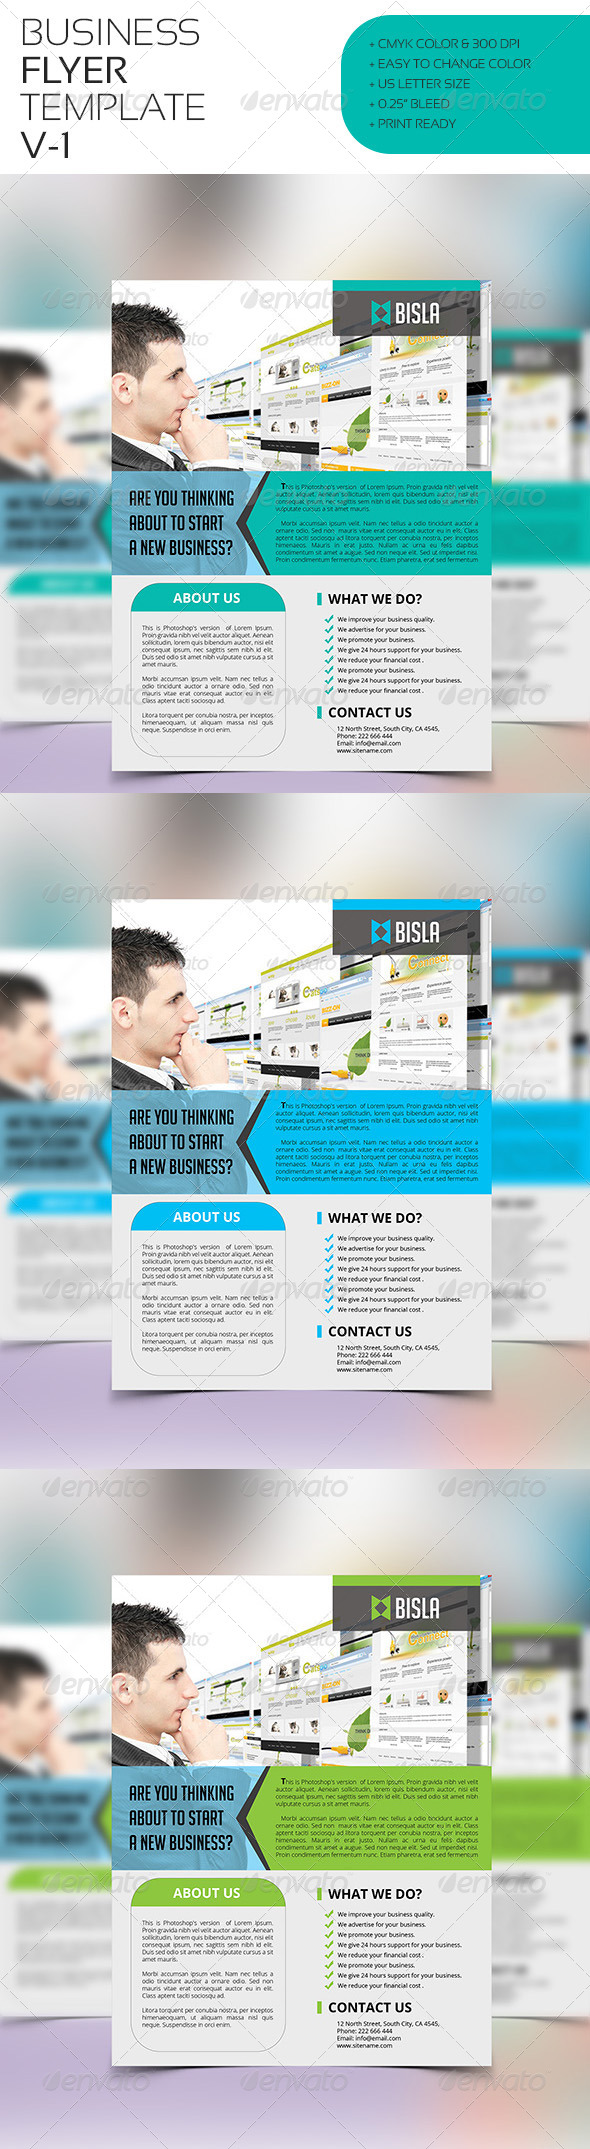 GraphicRiver Business Flyer Template V-1 8027675